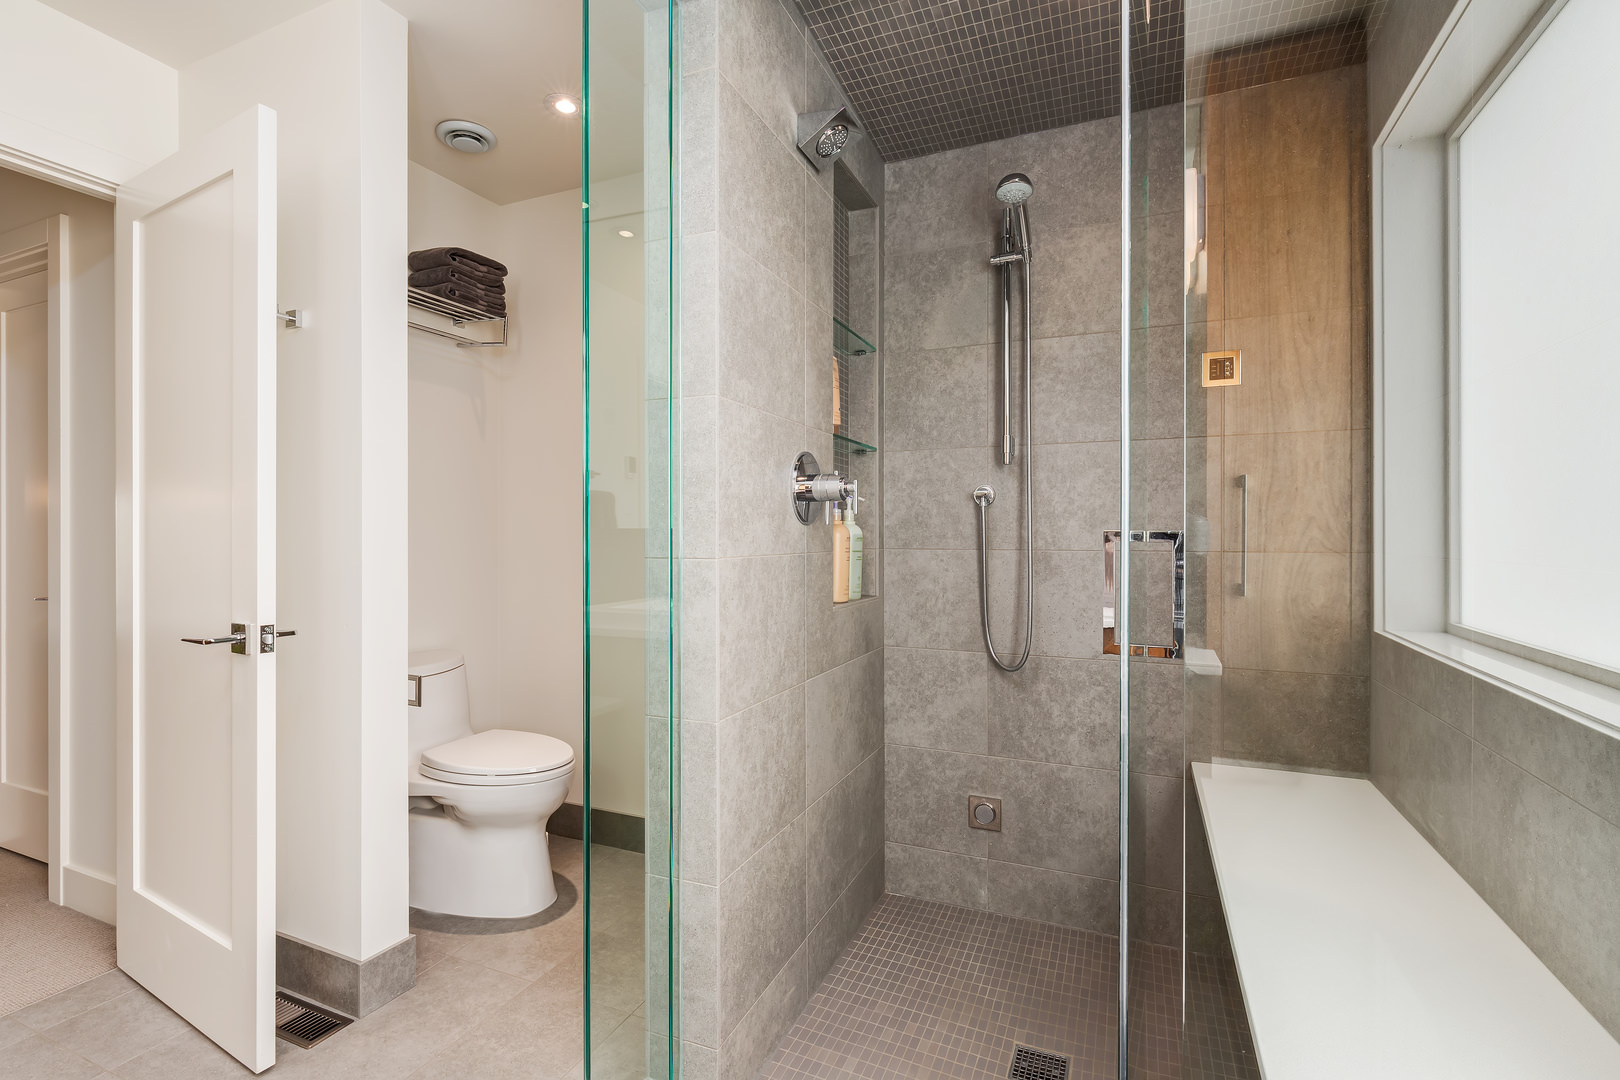 A walk in shower with grey tiles mirrors the feel of the rest of the home, with contemporary chrome fixtures.